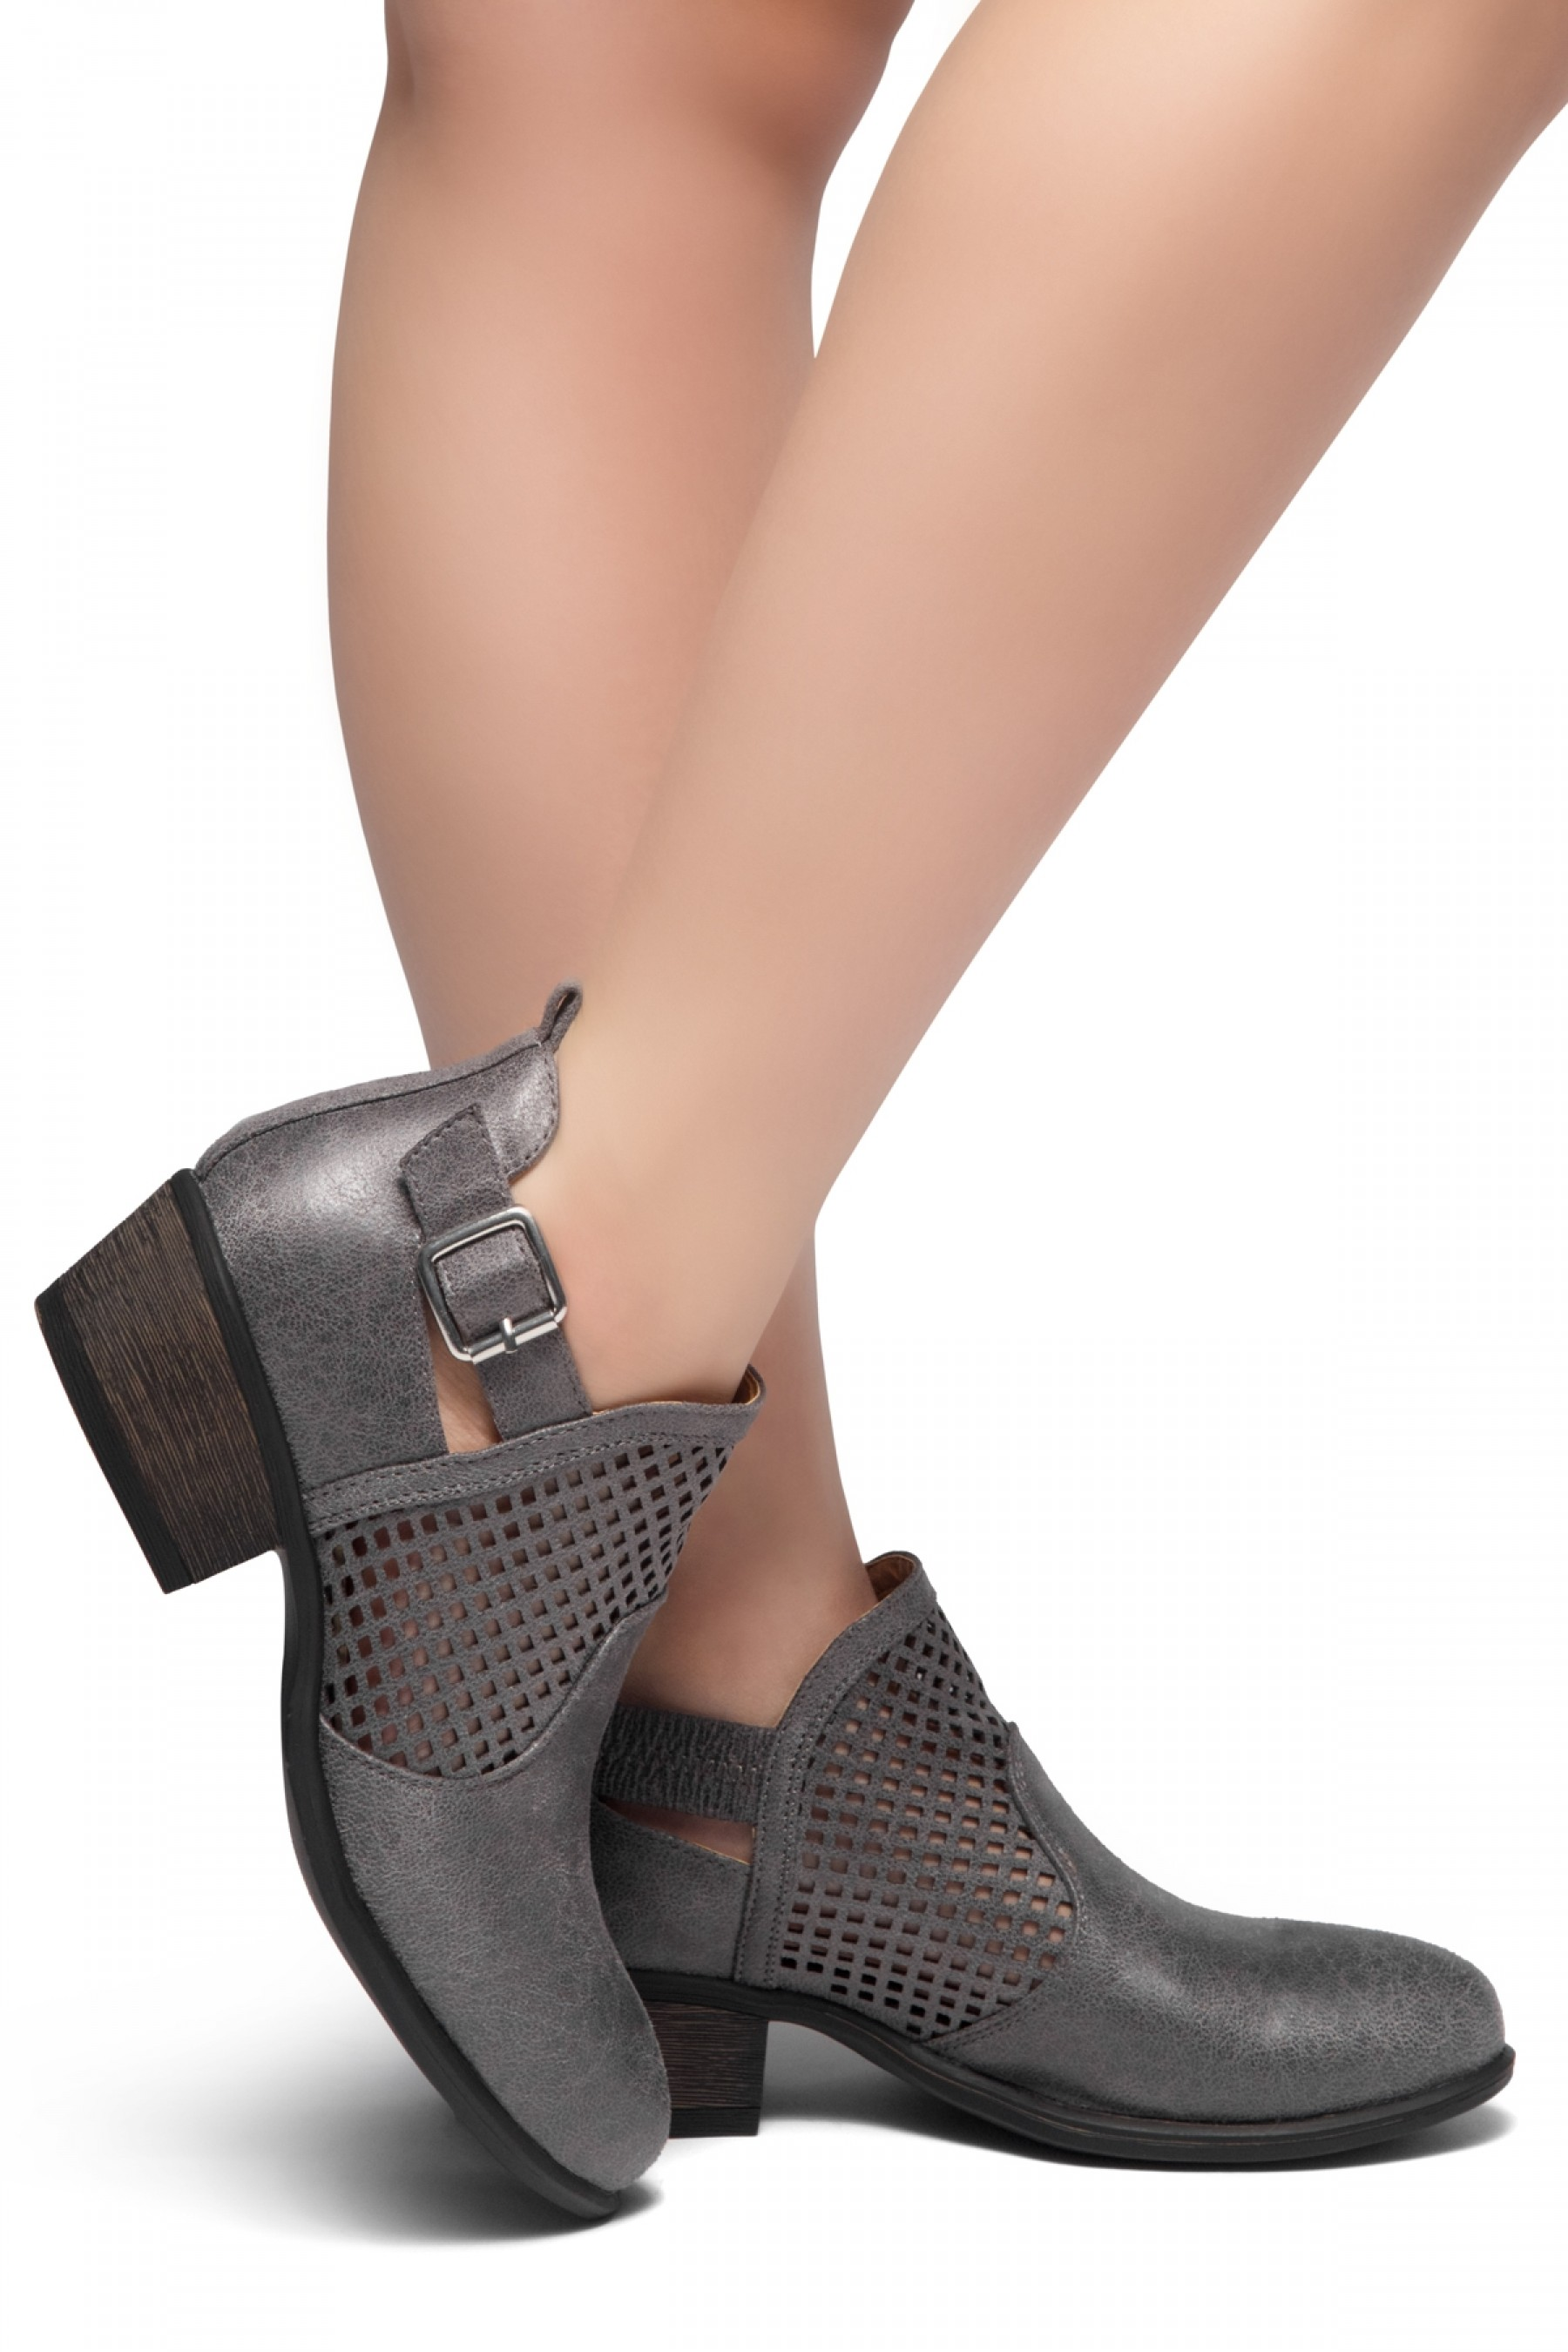 HerStyle Milton-Stacked Low Heel Almond Toe Buckled Decorative Booties (Grey)